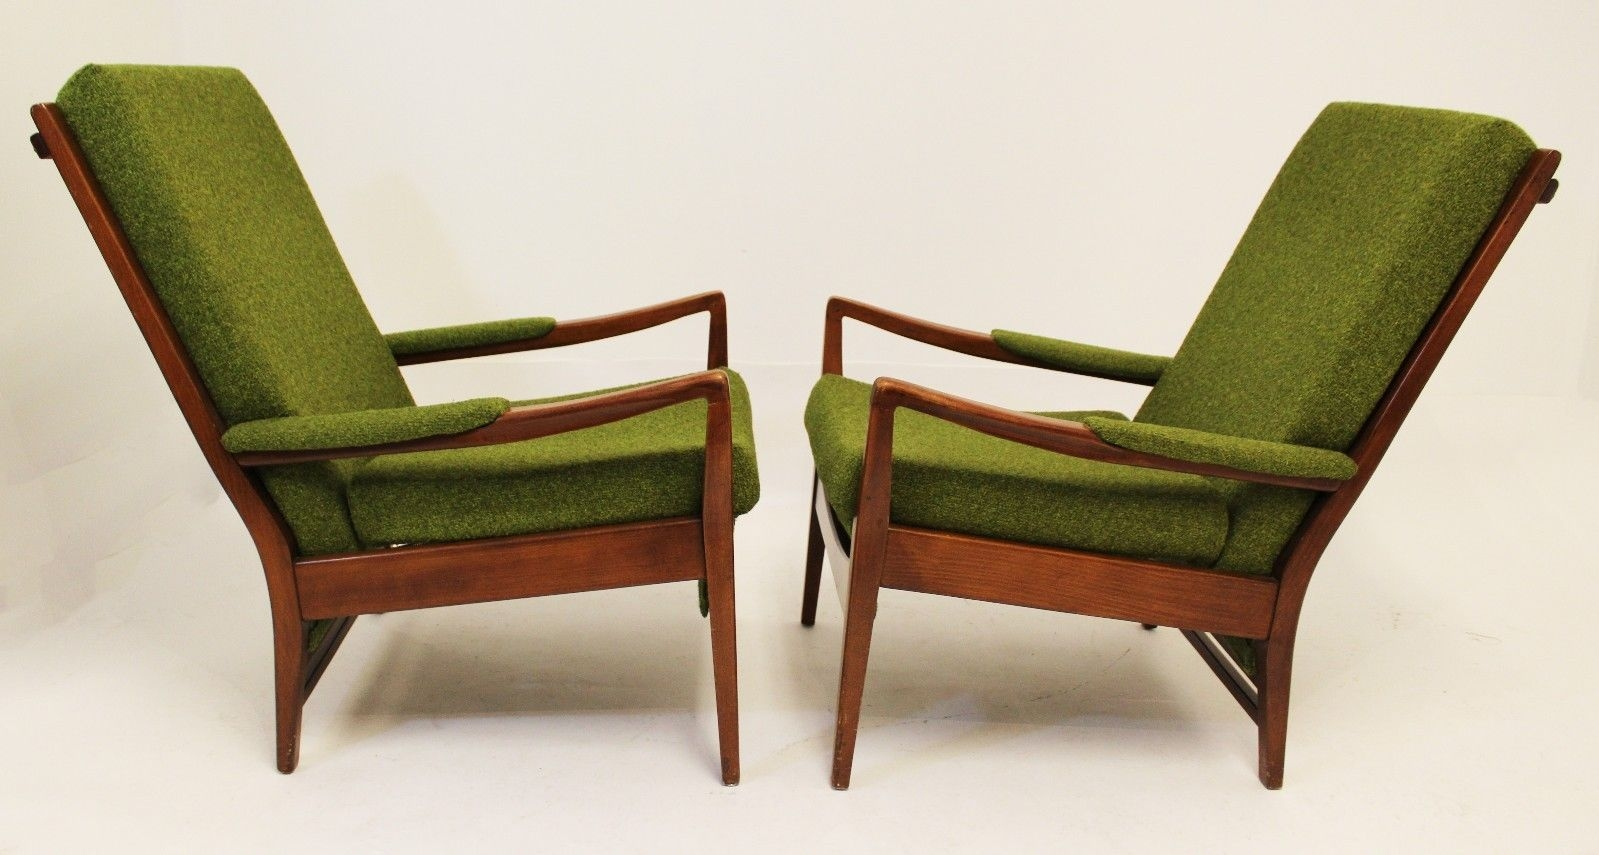 Innovative Premium Cintique Mid Century Armchairs In Mid Century Modern Pair Of Cintique Walnut Chairs English Larsen (View 2 of 15)